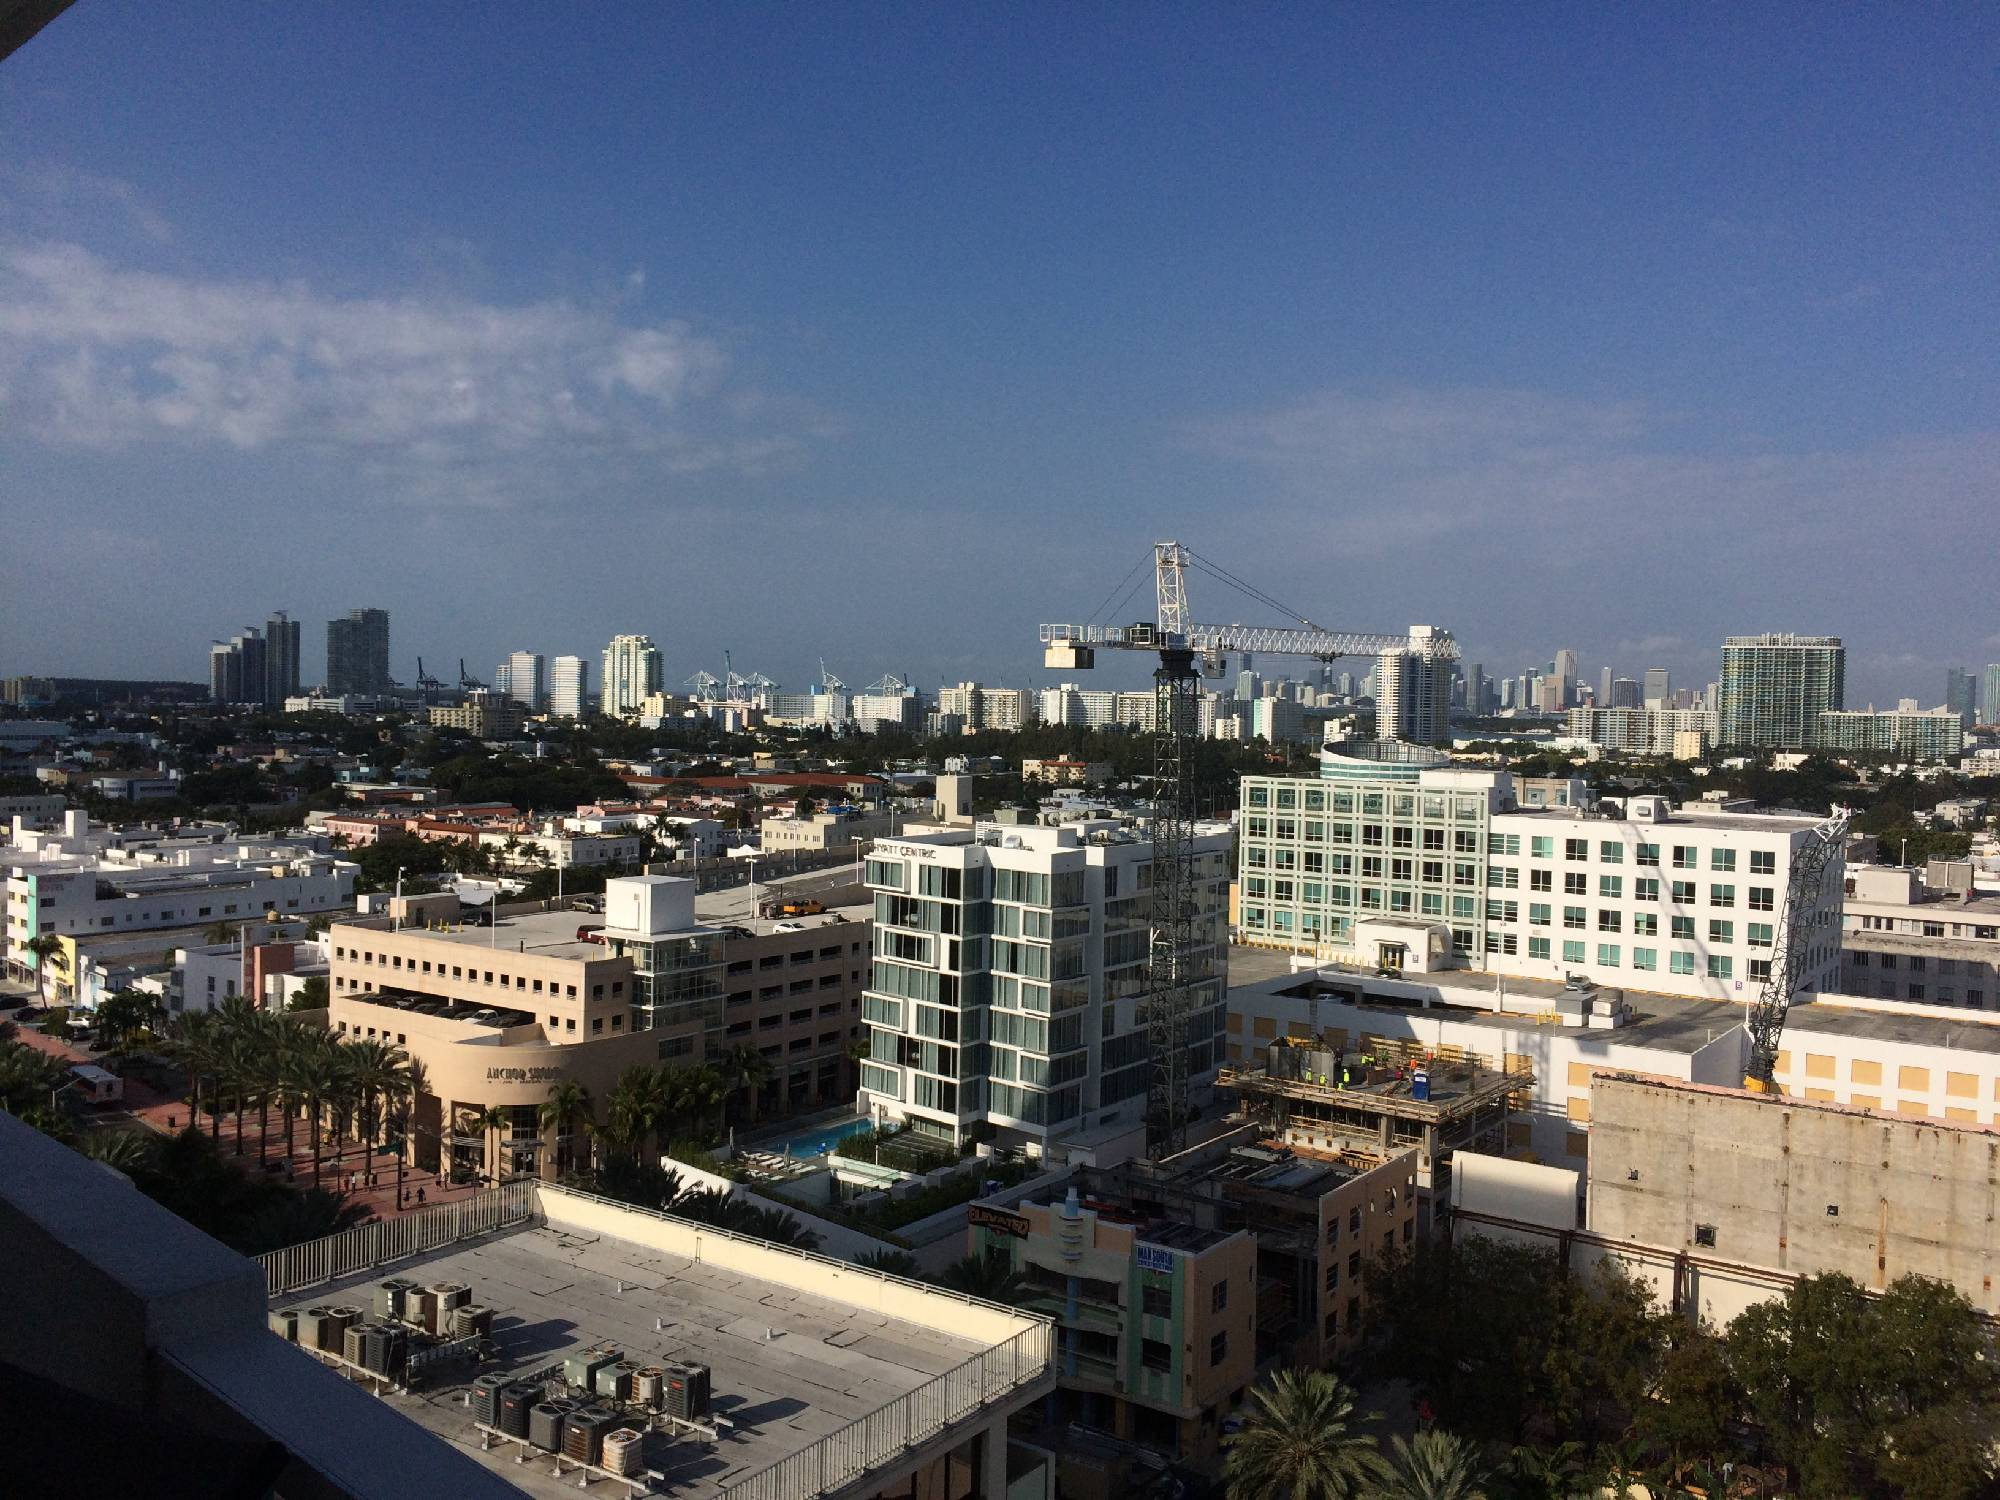 View of Miami Beach from balcony